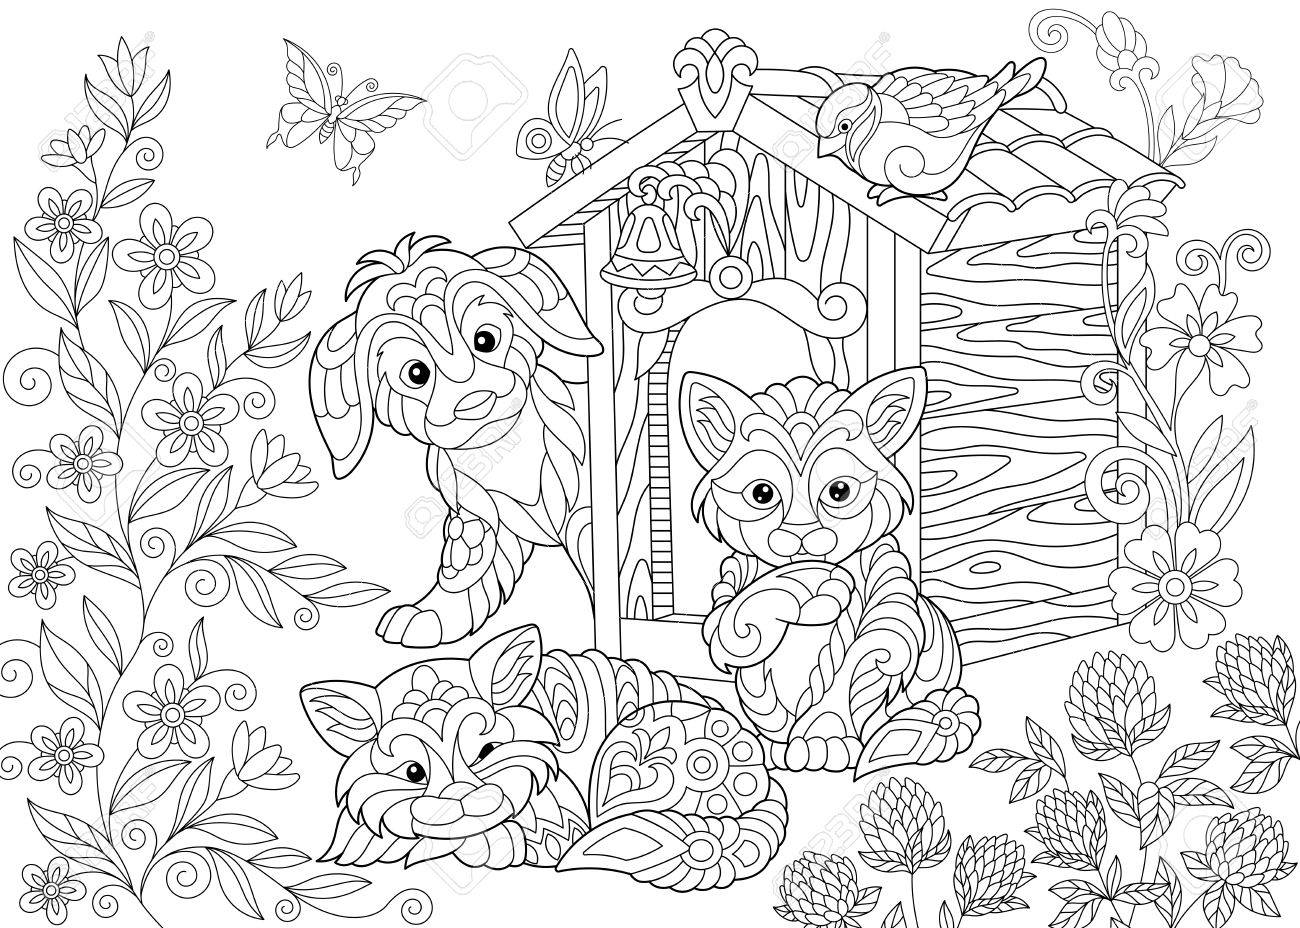 1300x928 Coloring Page Of Dog, Two Cats, Sparrow Bird And Butterflies